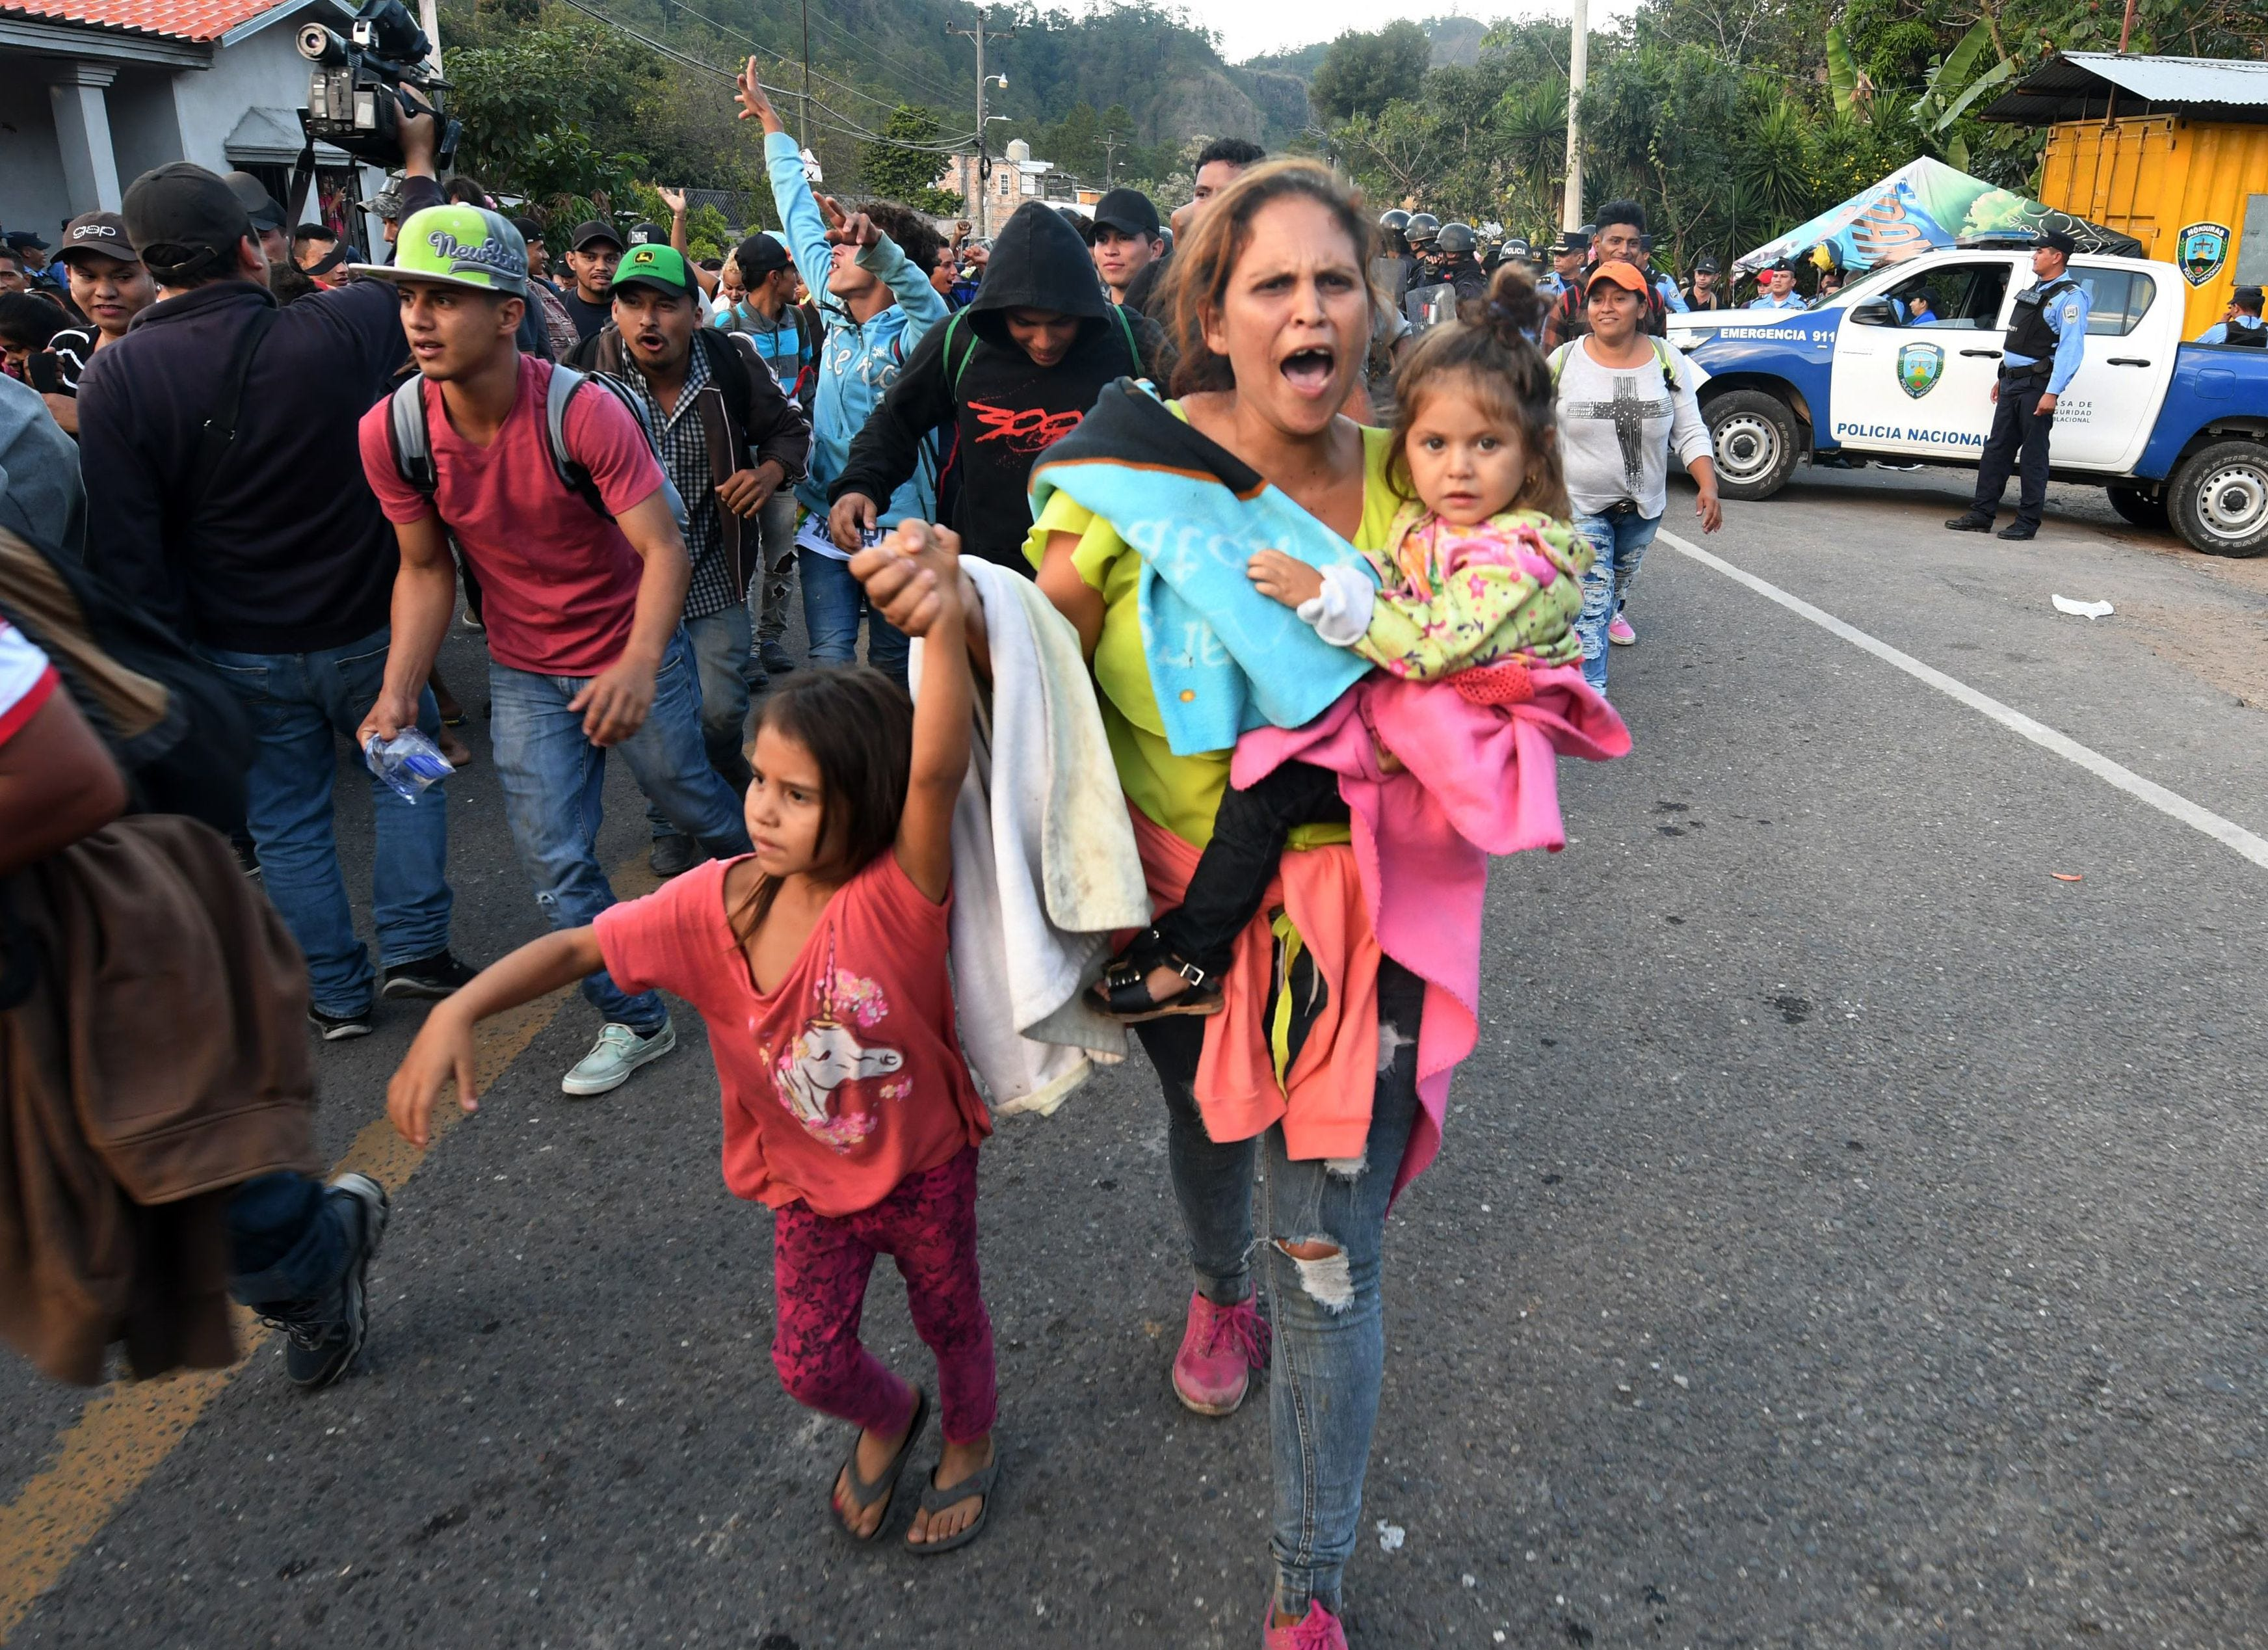 US-Honduras asylum deal puts migrants in political violence crosshairs